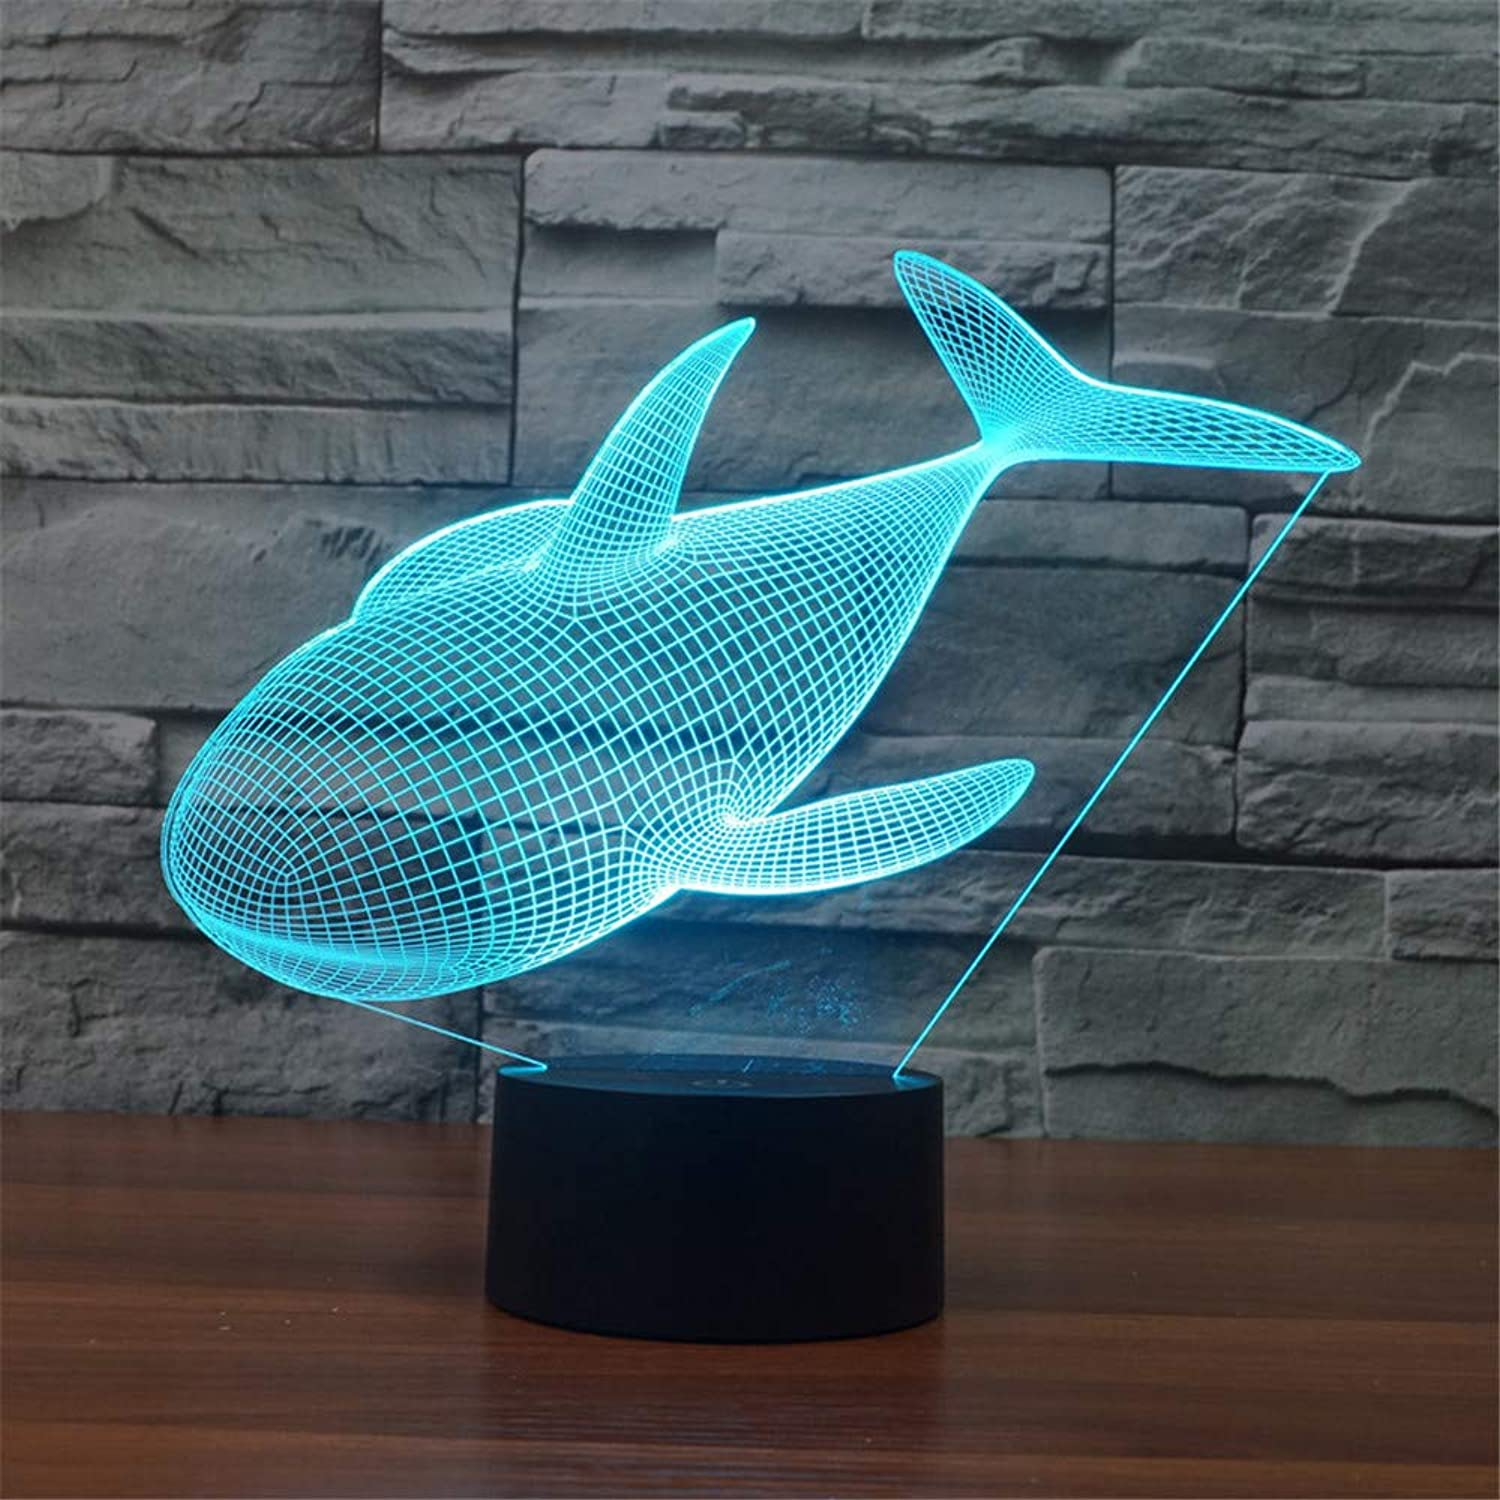 3D LED Night Light Table Desk Lamps 3D Optical Illusion Visual Lamp 7 colors Touch Table Desk Lamp for Christmas Birthday Gift Whale